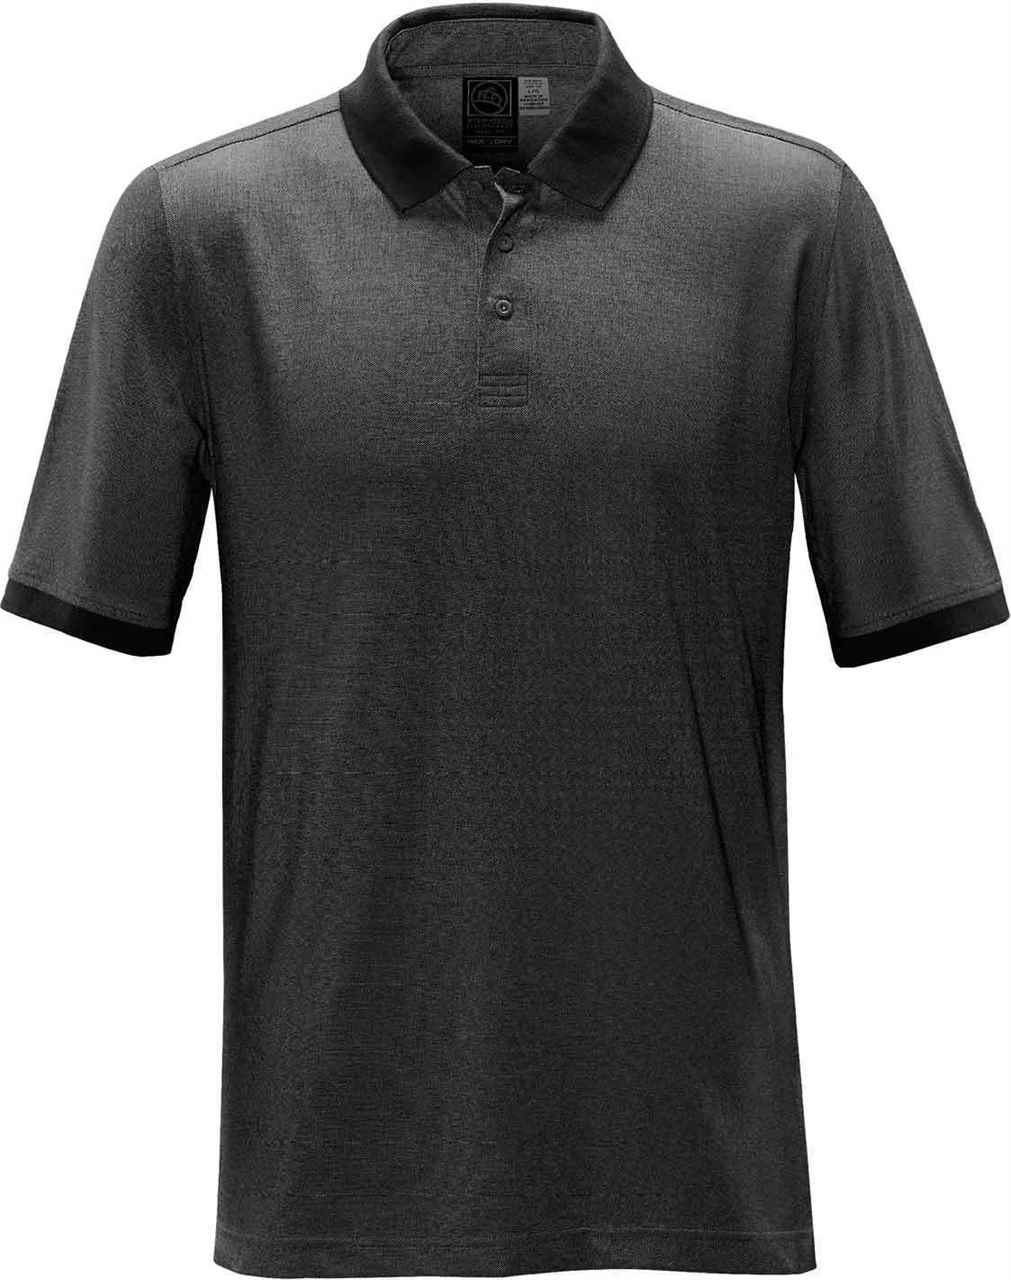 Picture of Men's Sigma Poly Cotton Polo